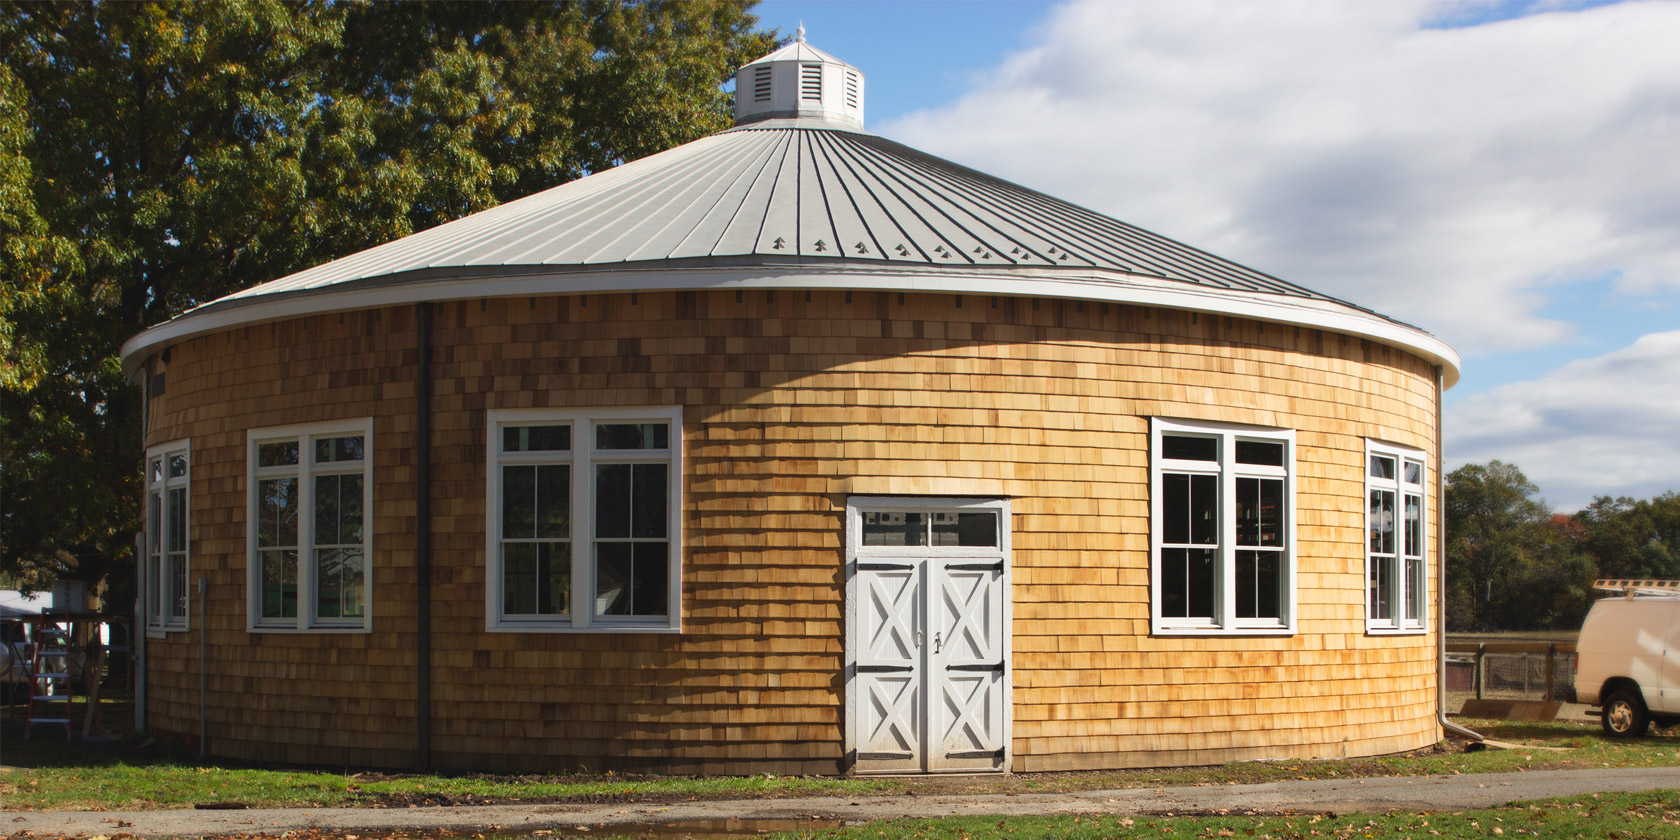 The Roundhouse A historic 1920's building that serves as a livestock classroom.